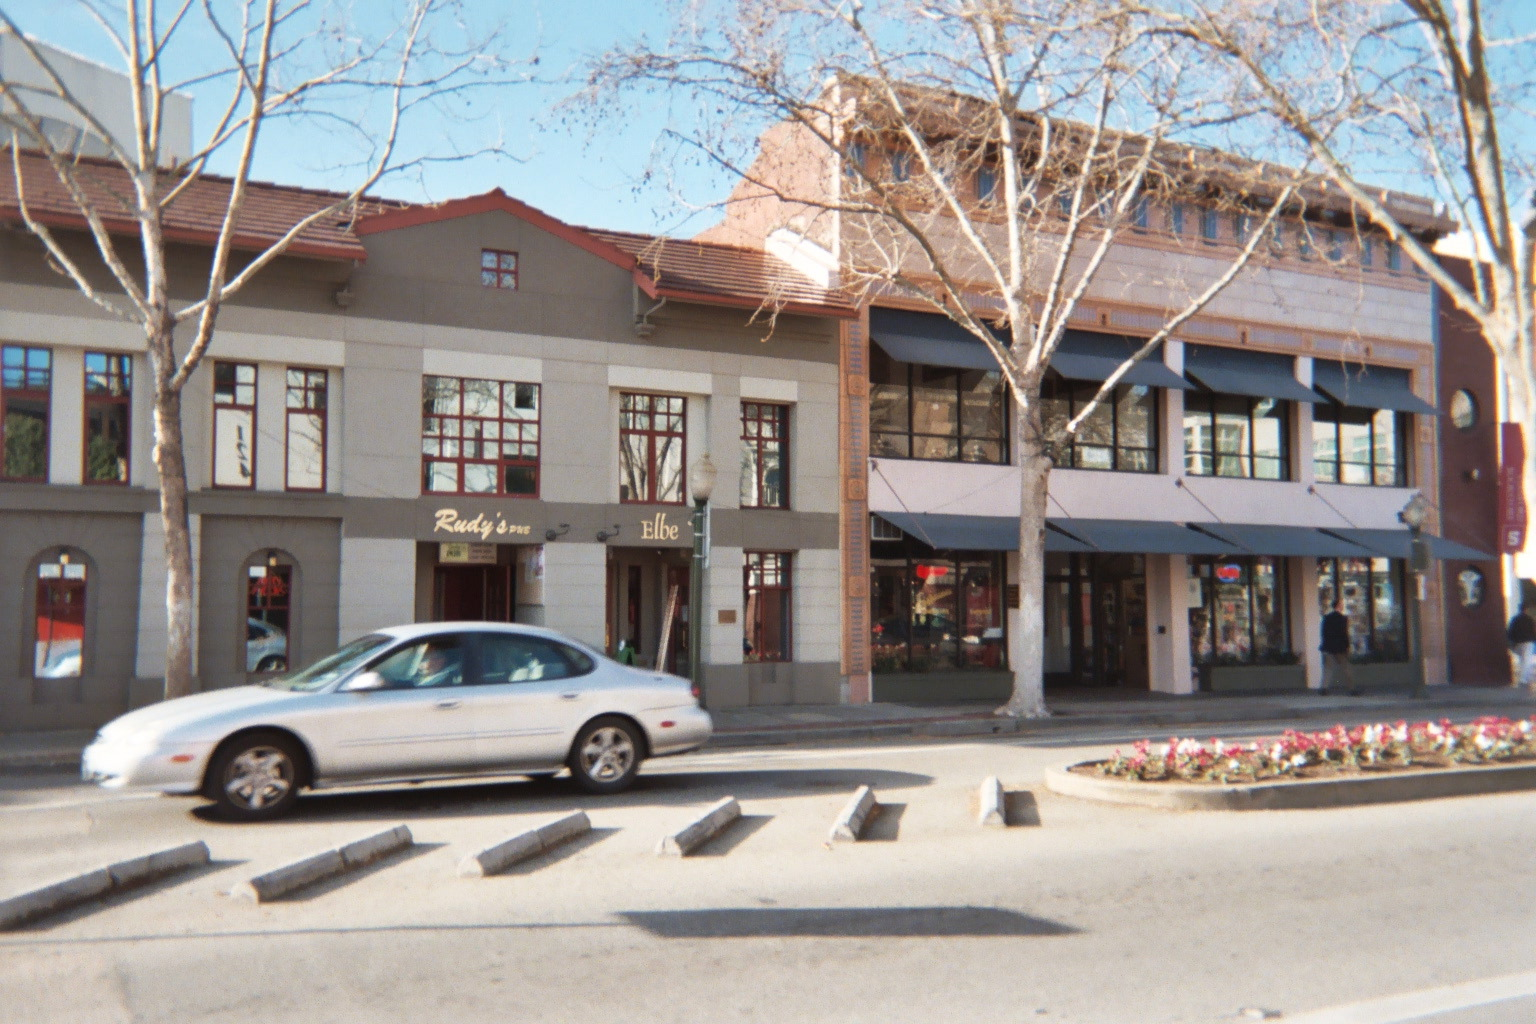 117 University Avenue In Palo Alto The Site Of Top Tangent As It Eared 2006 Restaurant Rudy S Is On Ground Floor